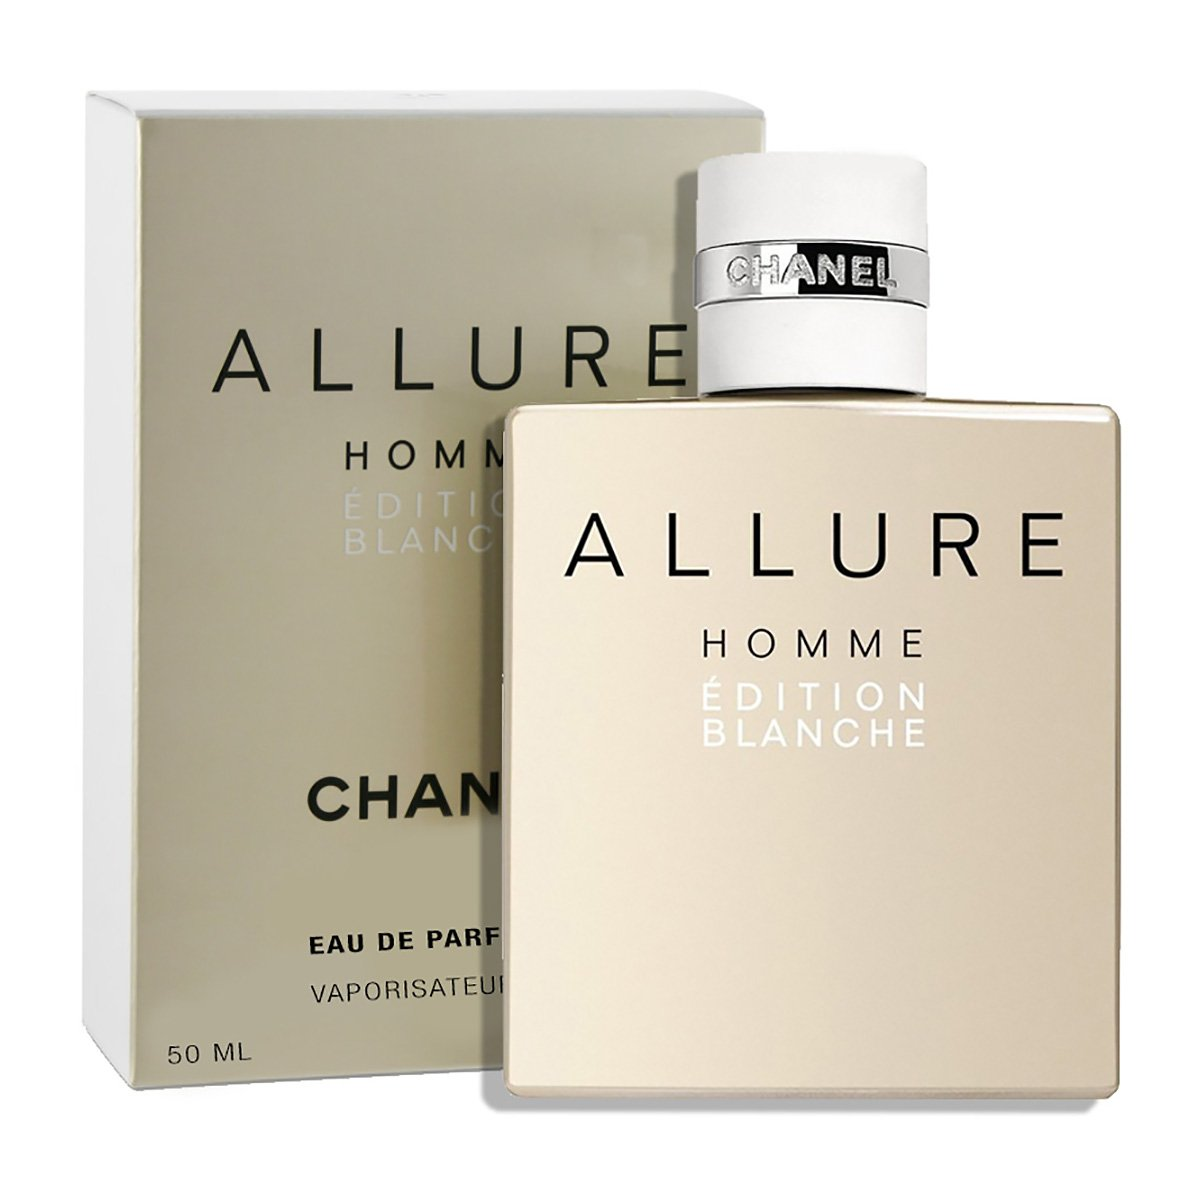 Chanel Allure Edition Blanche edp